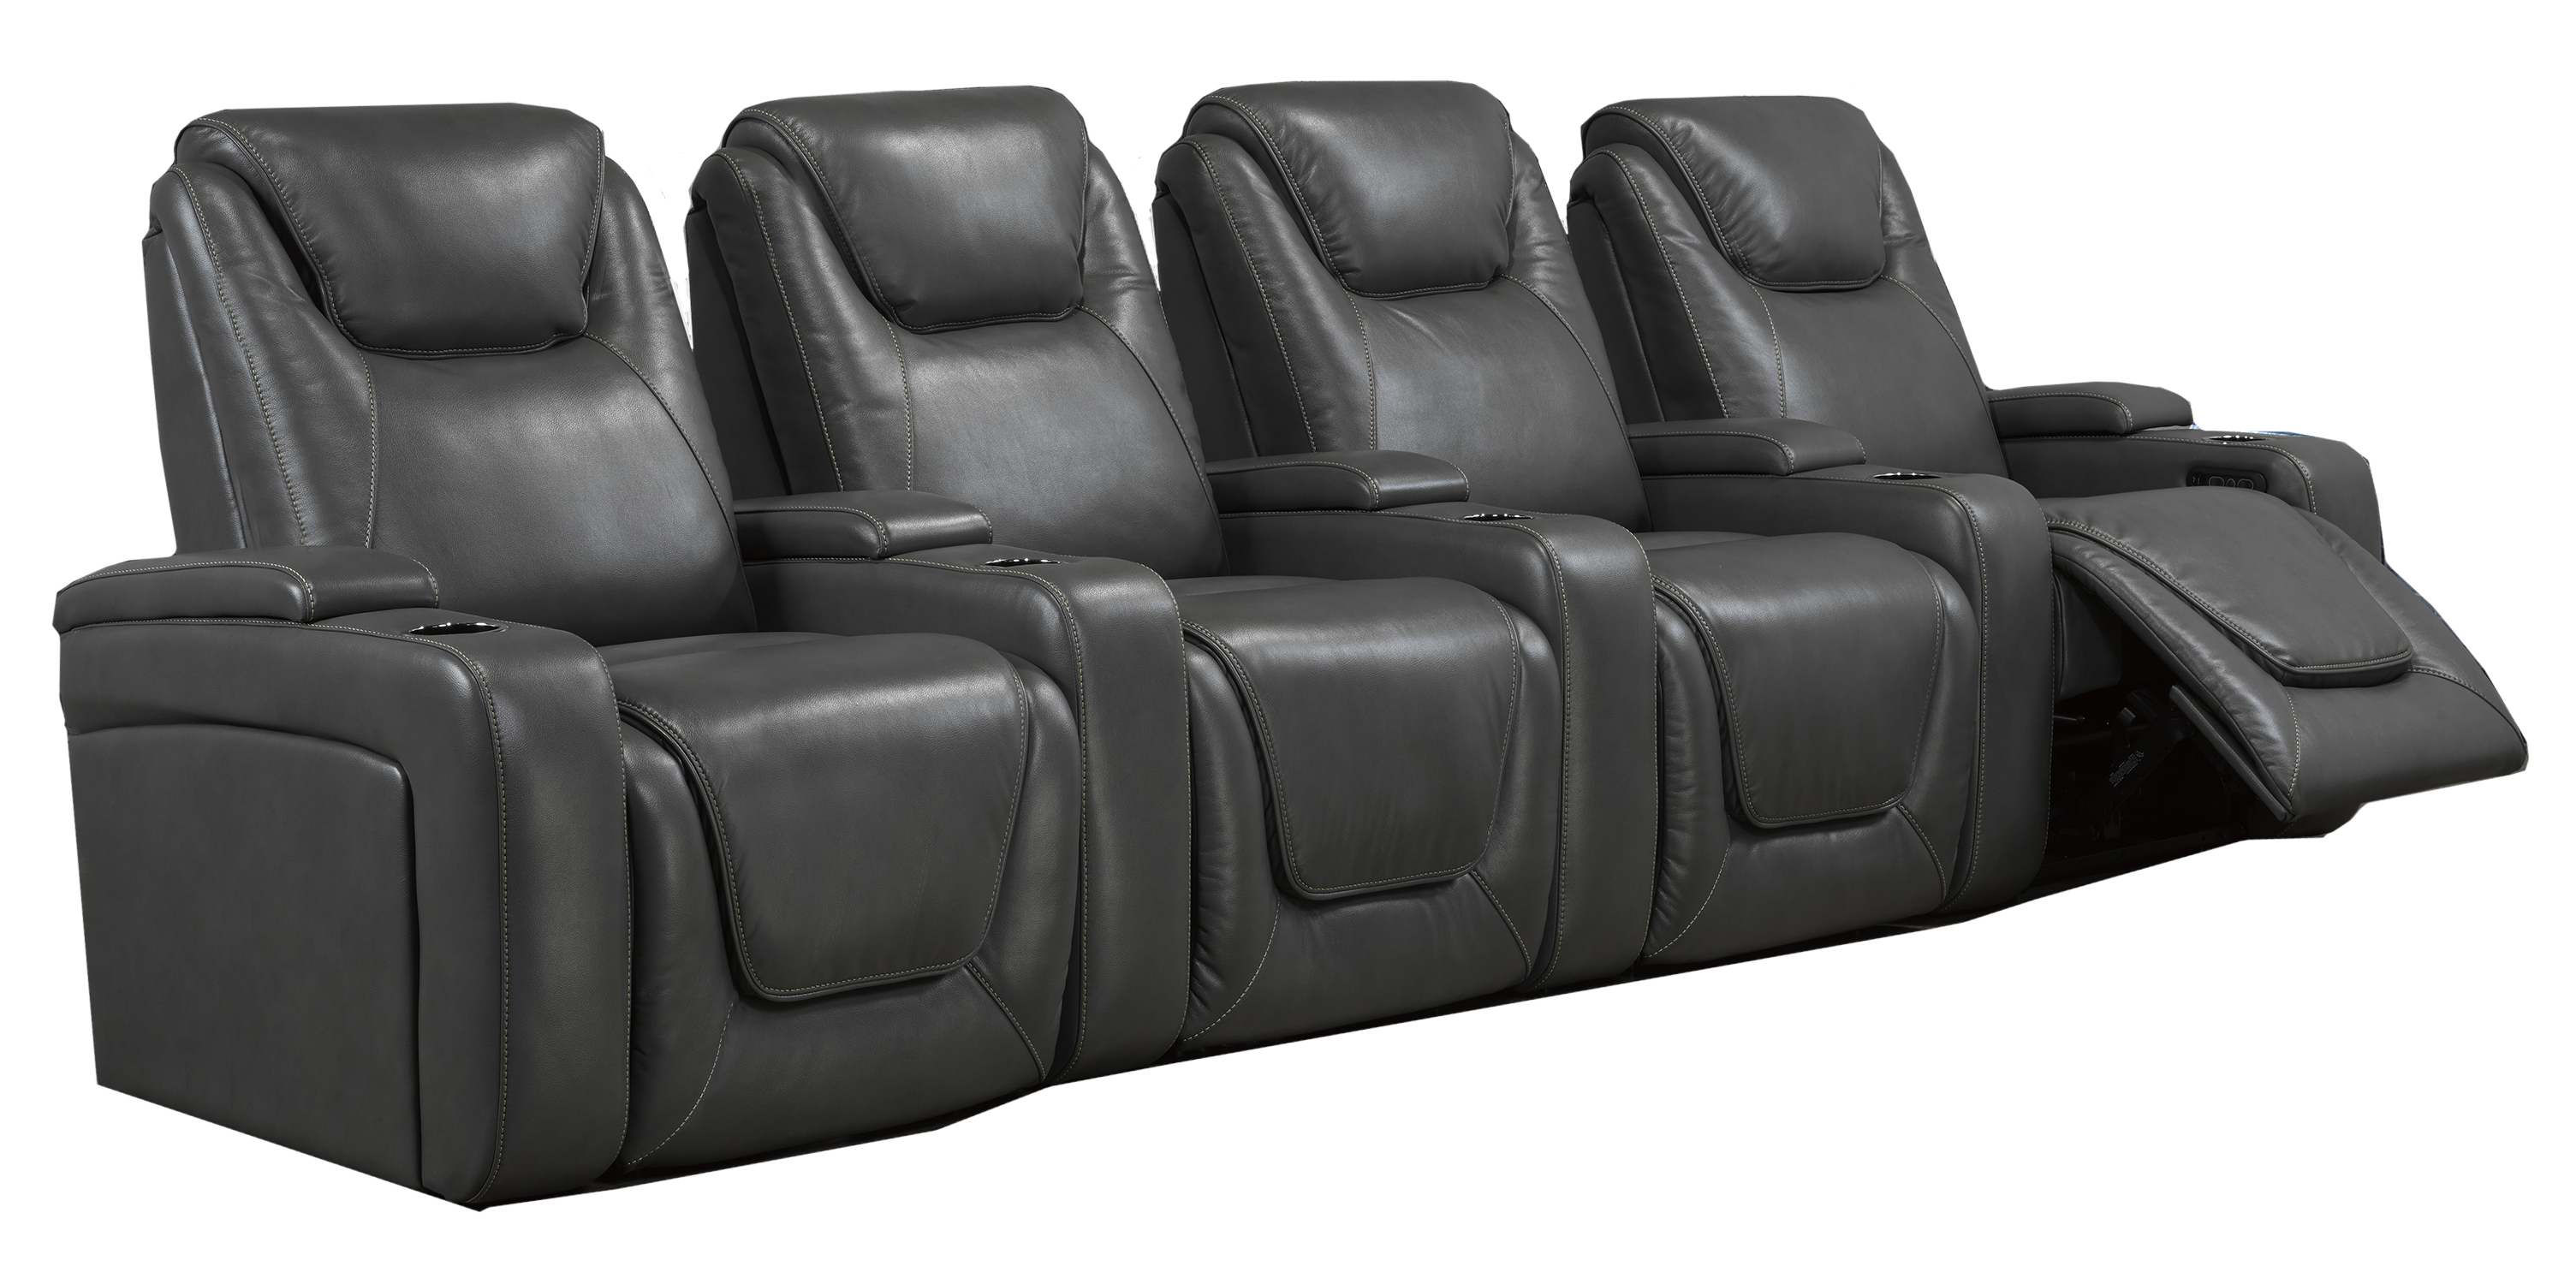 4-SEATER POWER HOME THEATRE - GREY